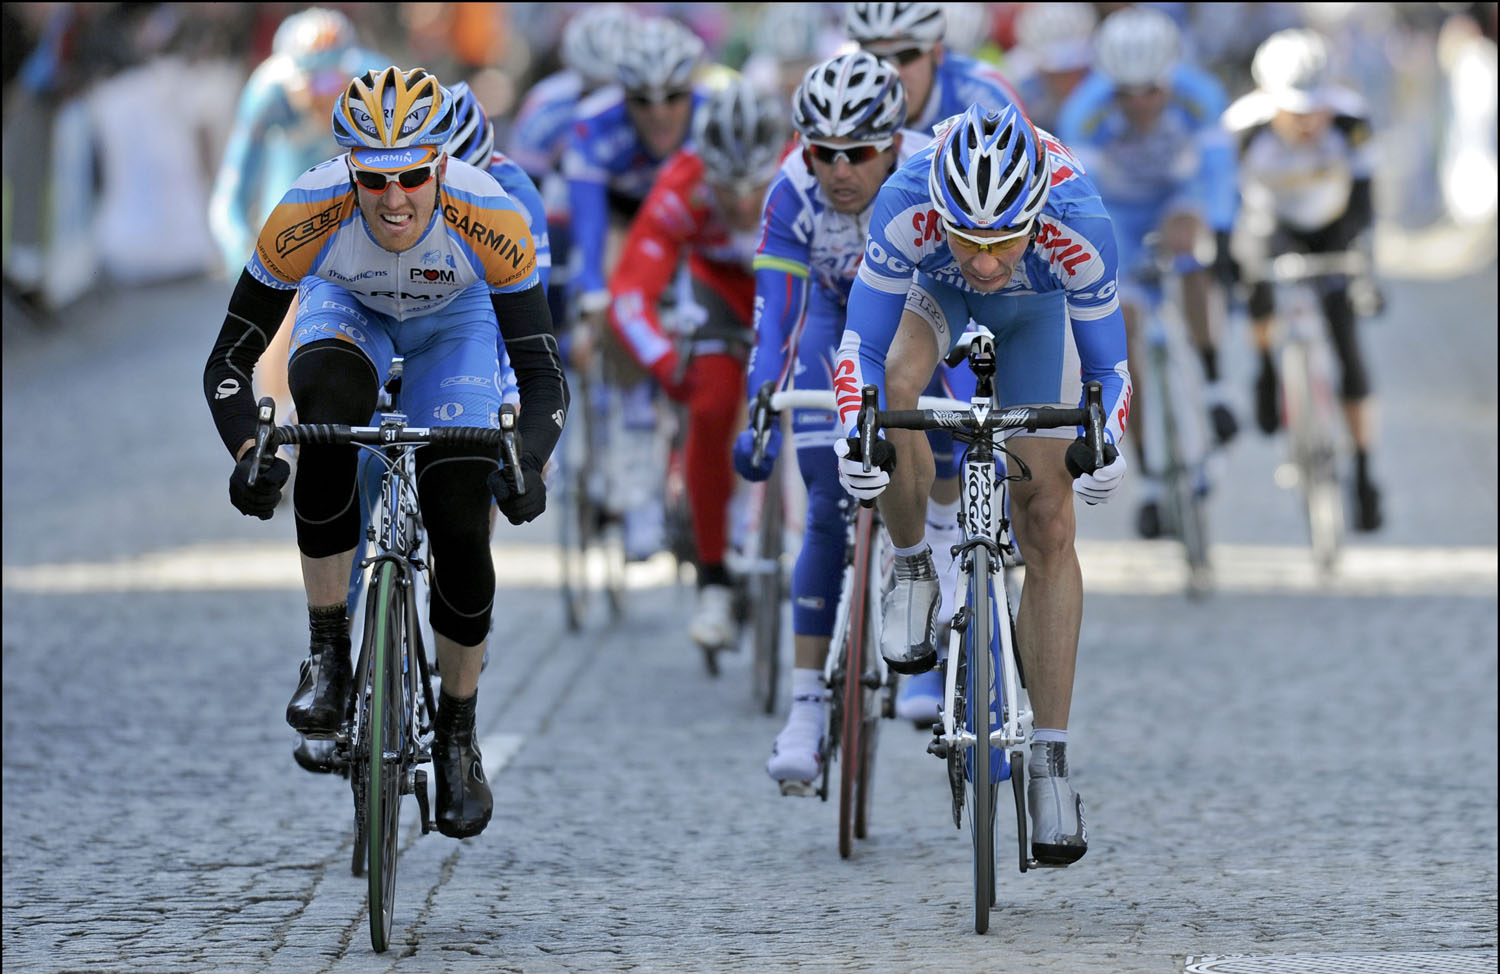 Tyler Farrar wins stage 3a, Three Days of De Panne 2010